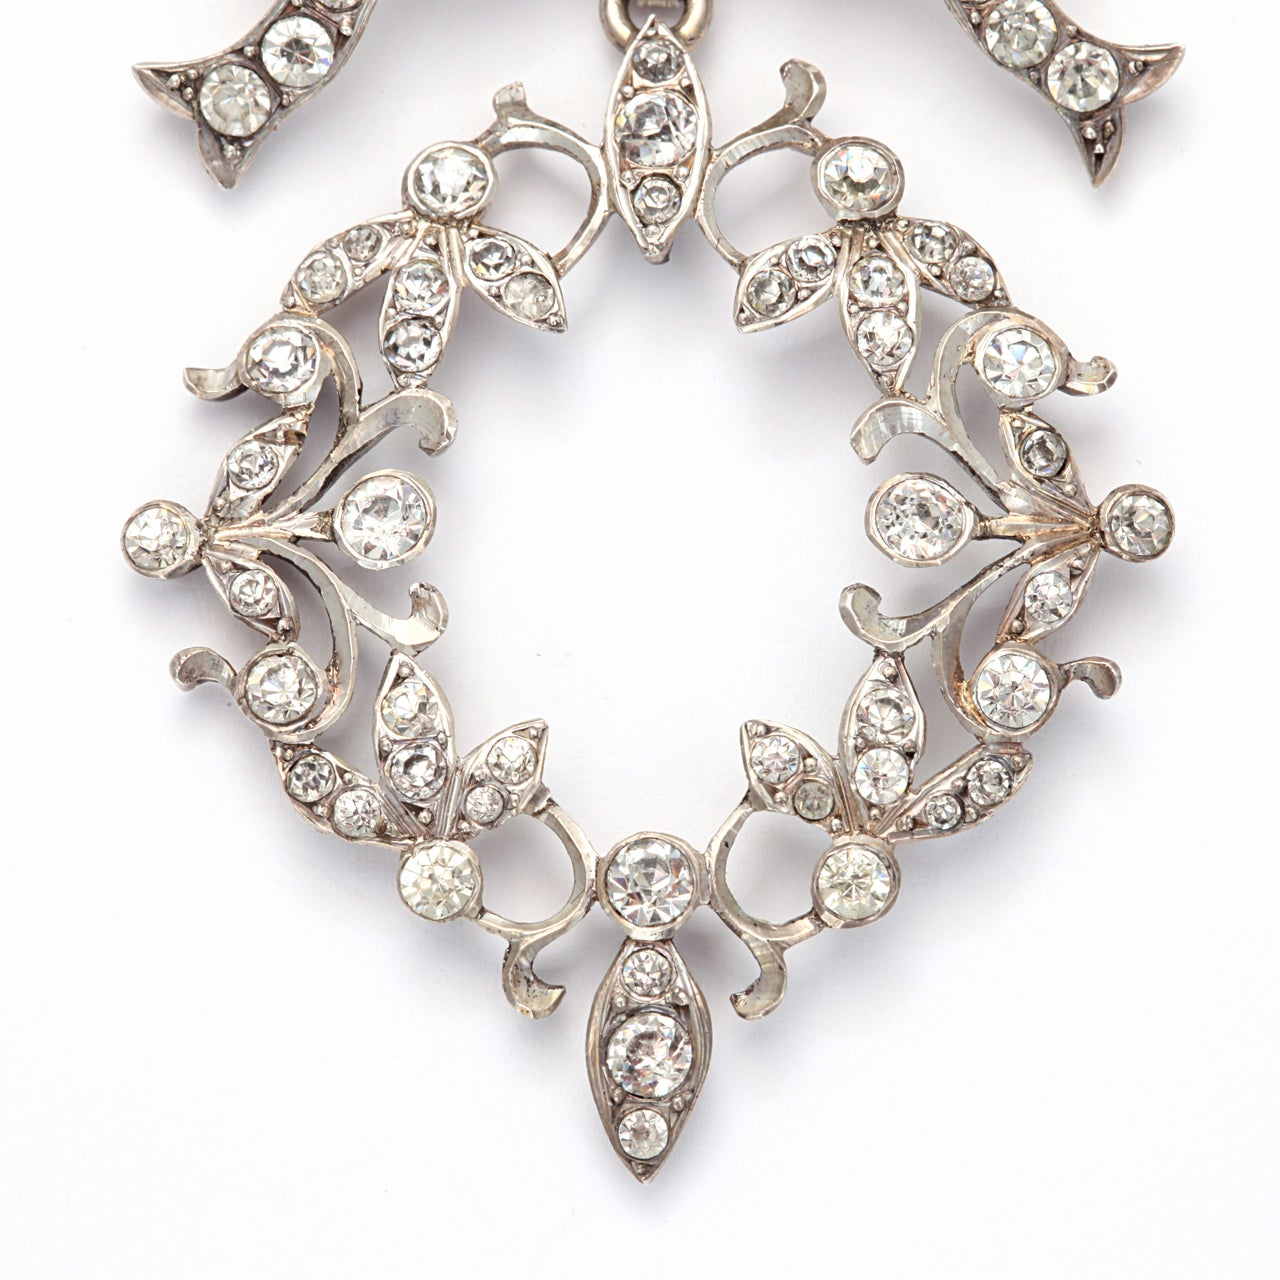 Graceful and unusual, with a bow as a reminder of affection, this silver and paste pendant was made in France in the Art Nouveau period when curves and swirls and garlands dressed architecture and ladies. The paste stones are a variety of sizes, a